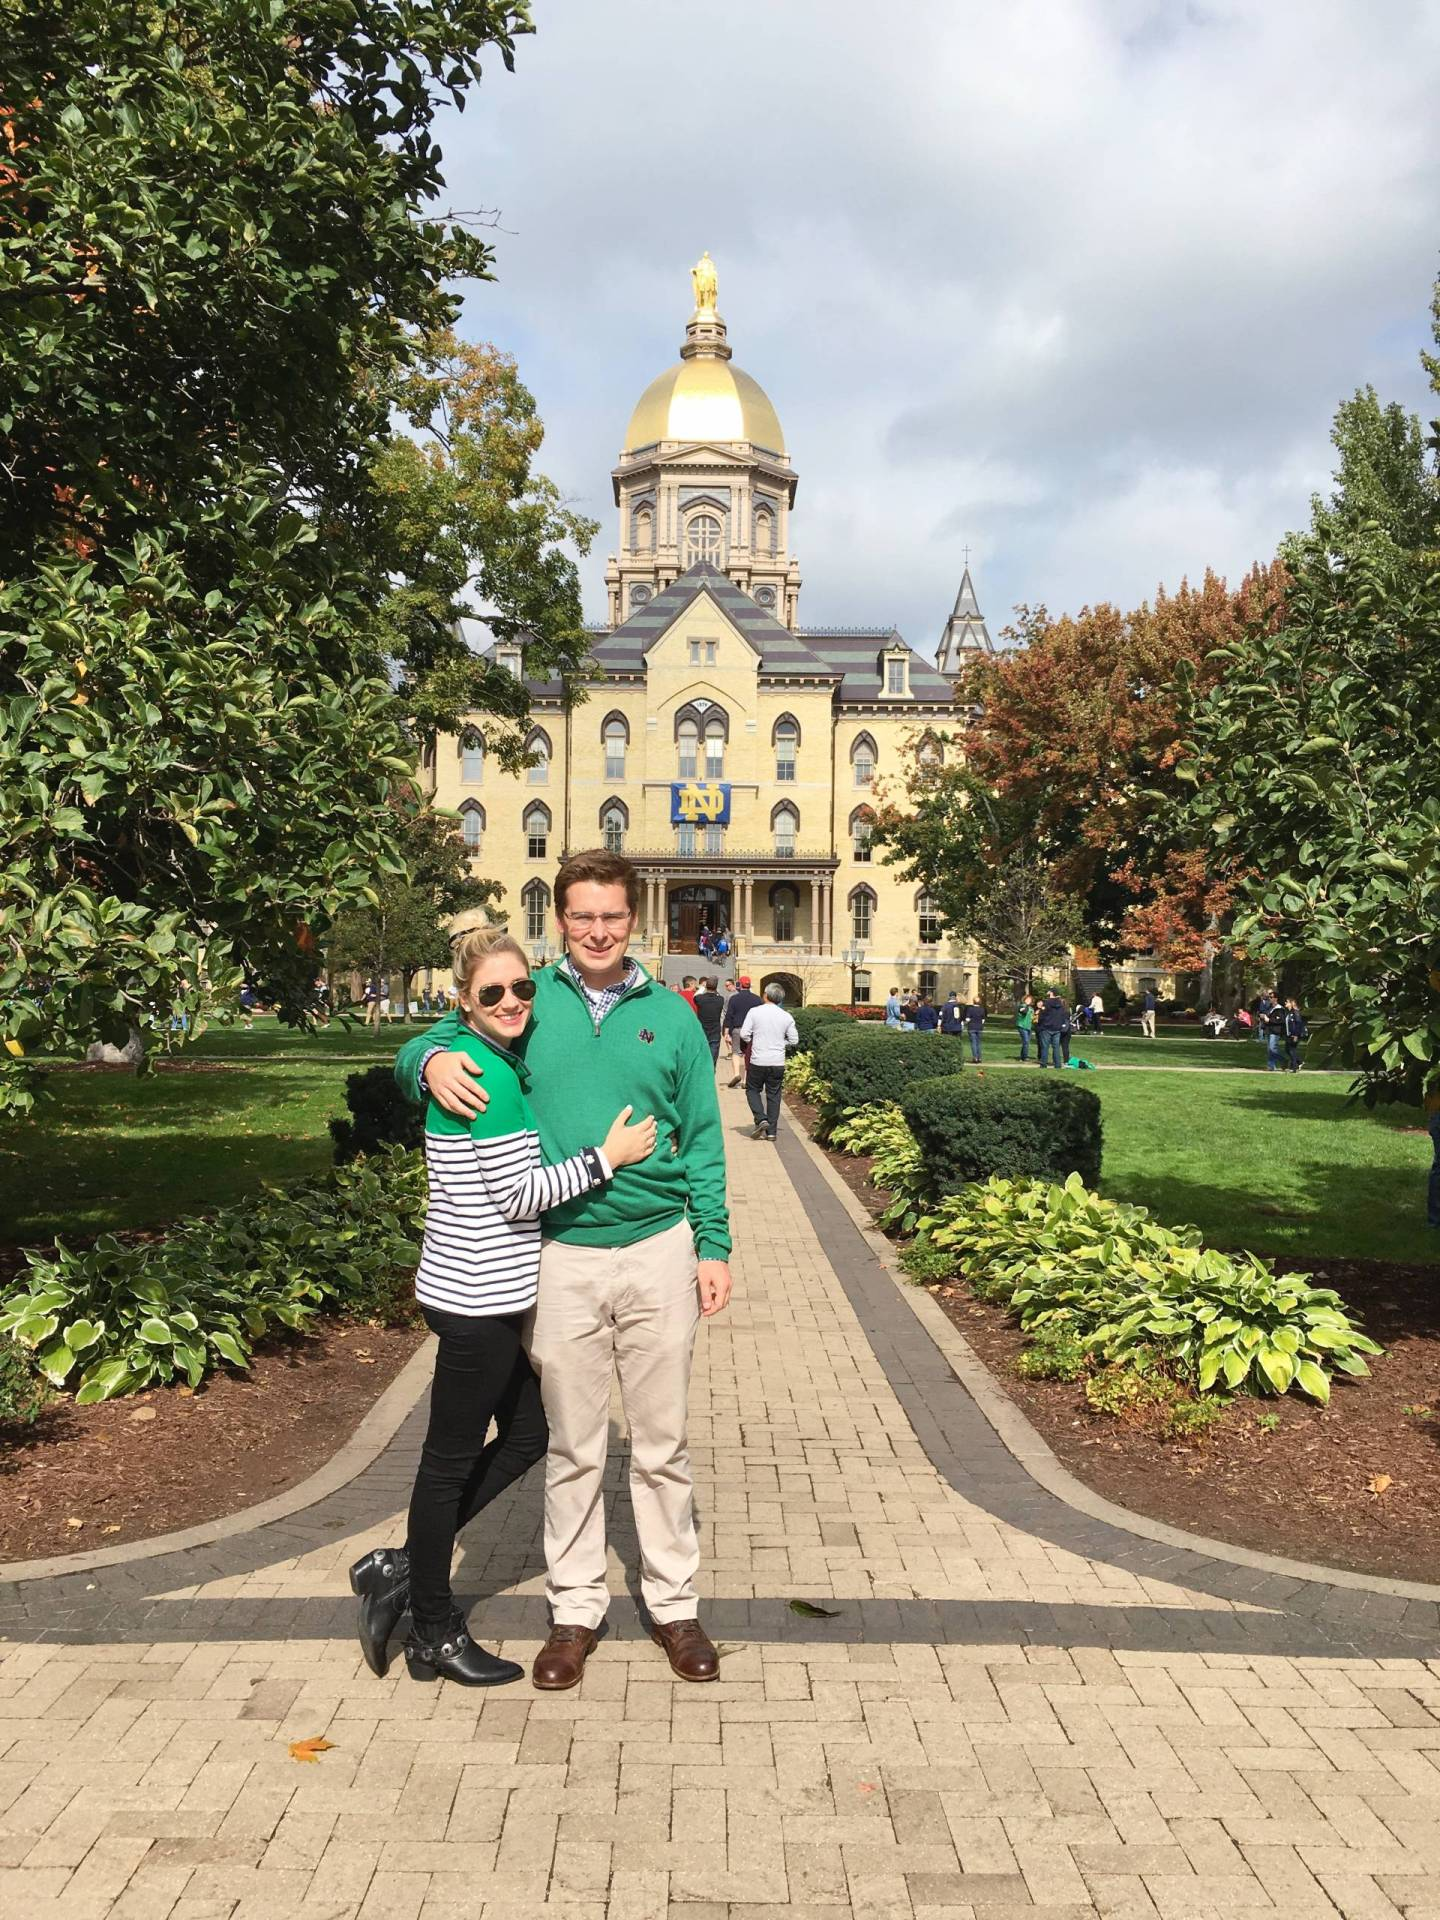 Wondering what there is to do in South Bend, Indiana other than a football game at Notre Dame? Those are a must-do but I promise there are some hidden gems, and I'm spilling the secrets!